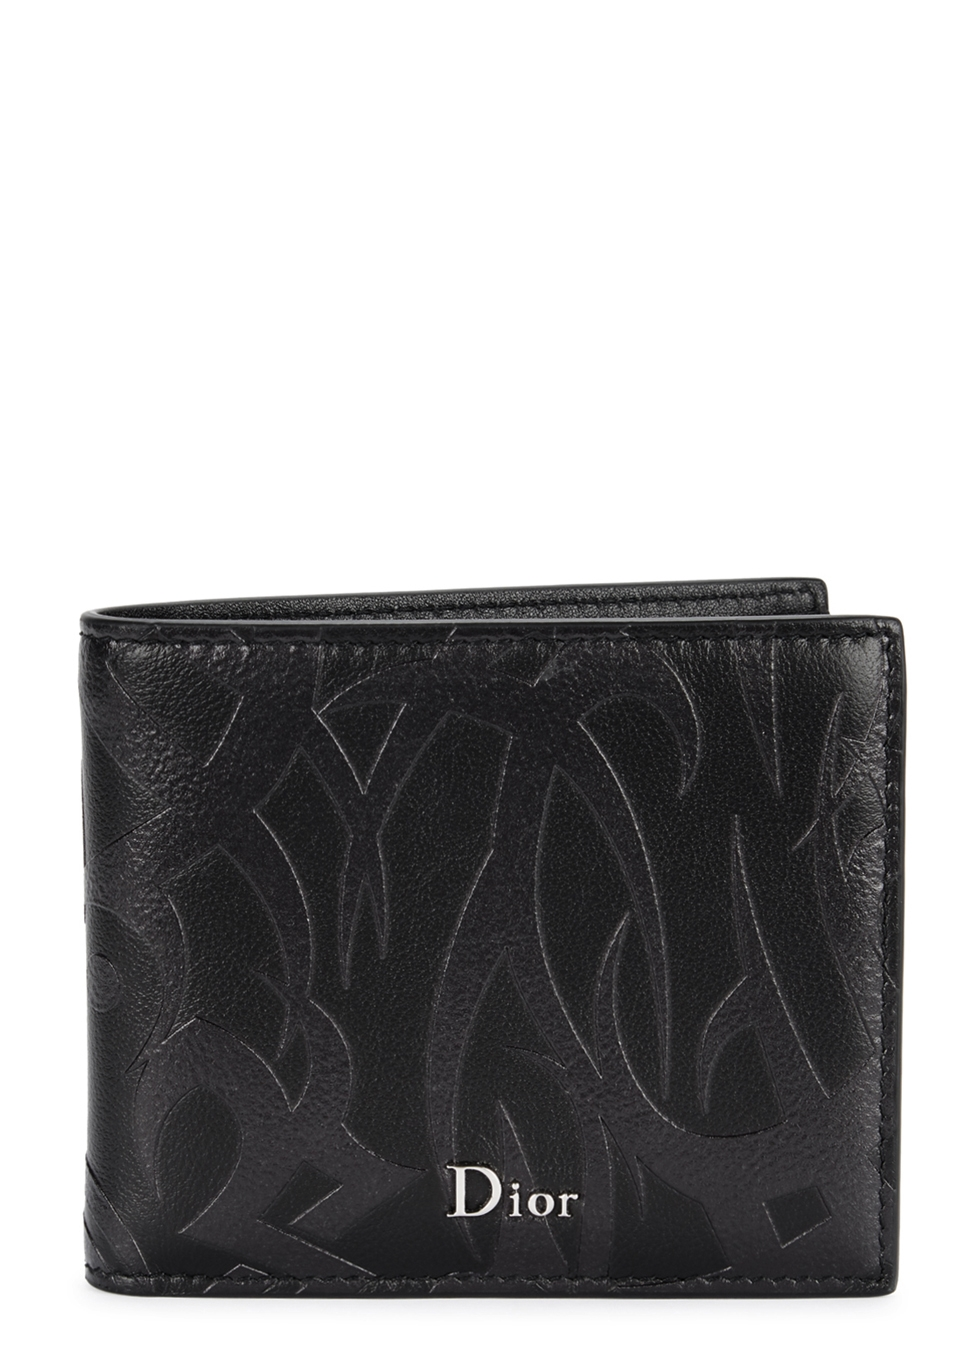 DIOR HOMME TRIBAL EMBOSSED LEATHER WALLET